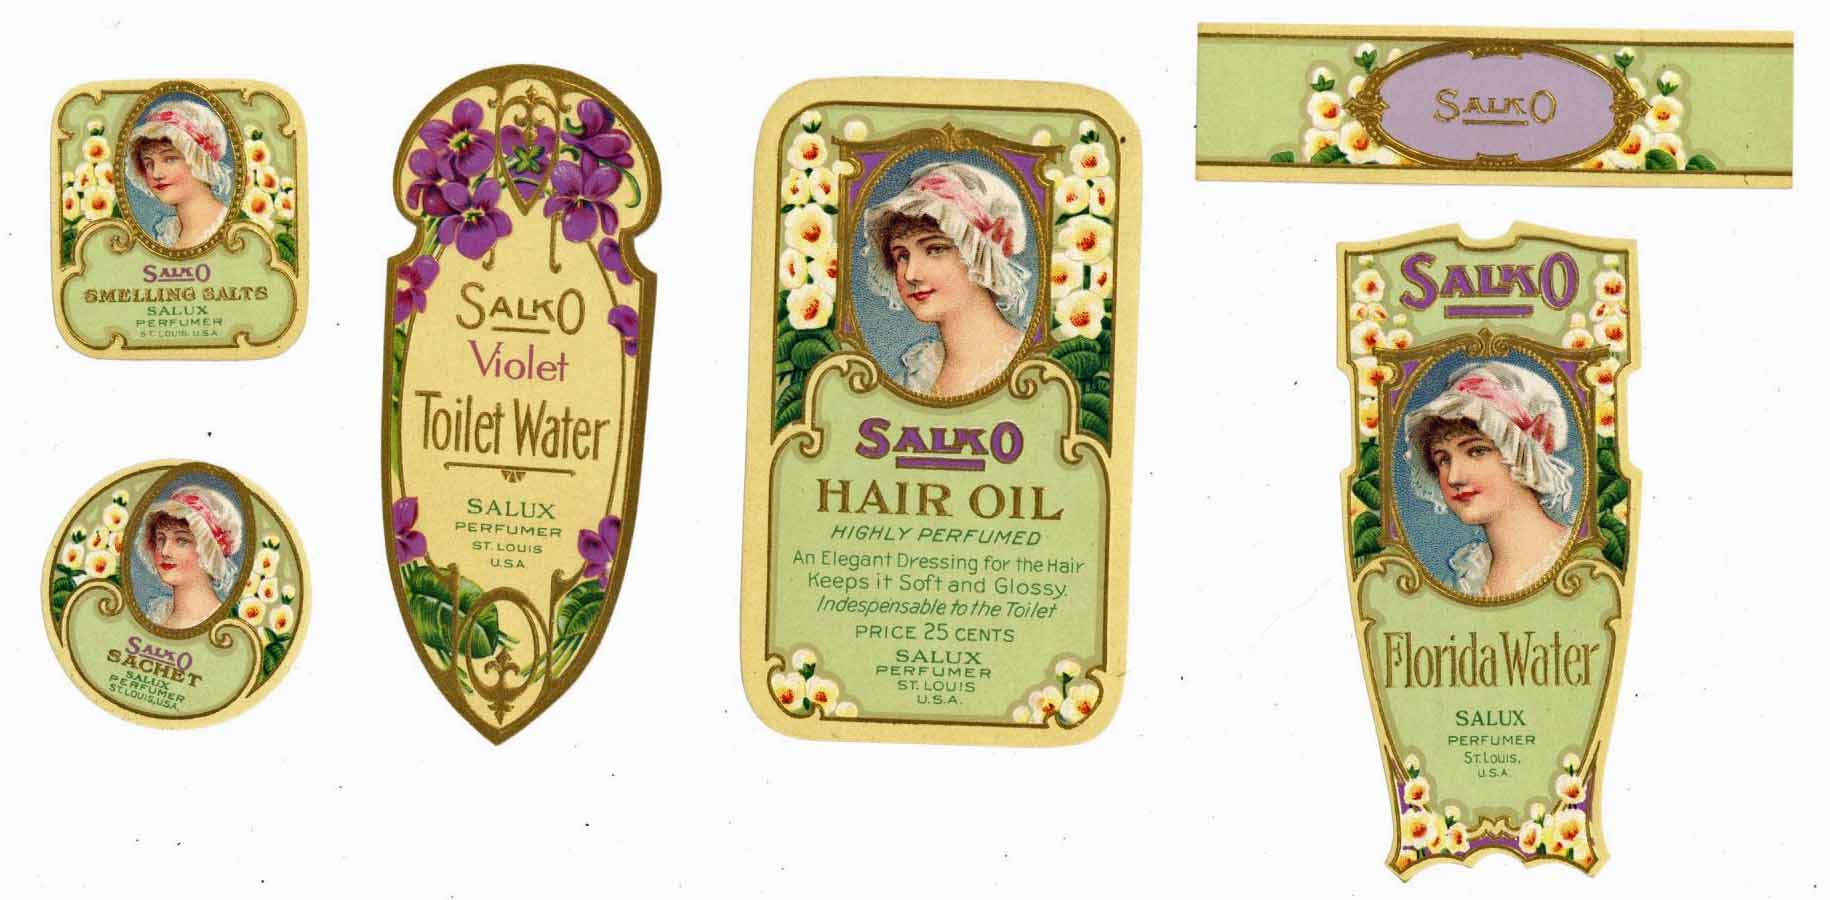 Salko Brand Vintage Perfume Bottle Label Set Of 5